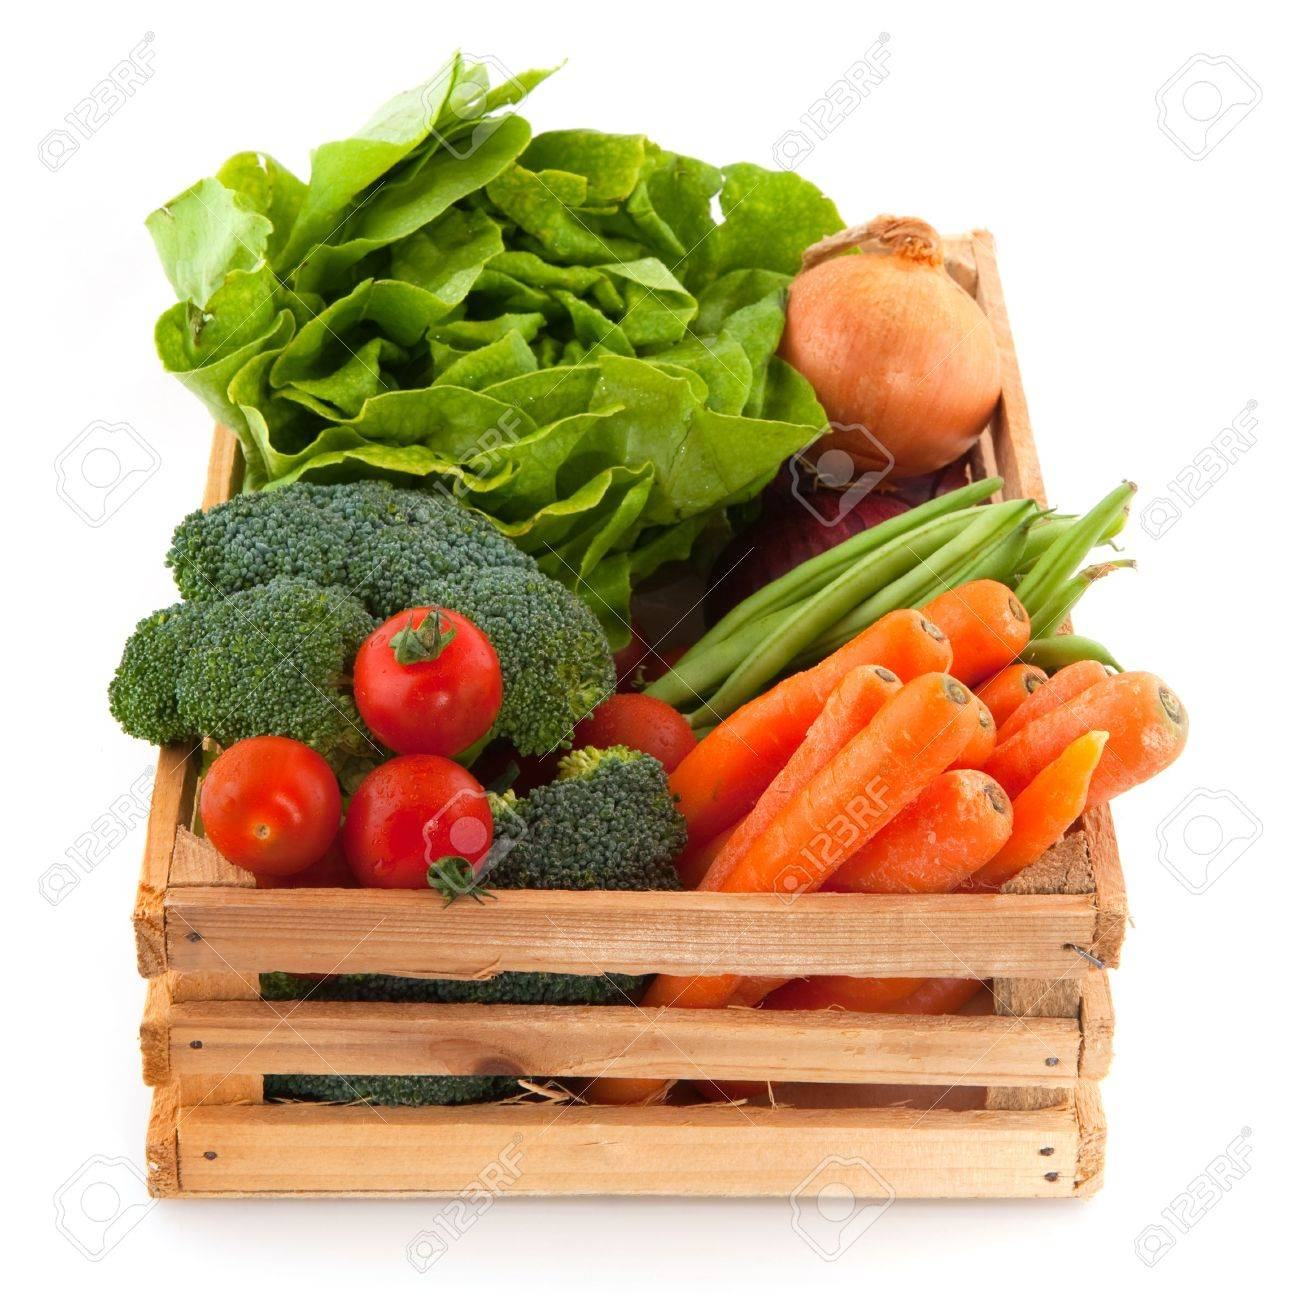 Vegetable Crates: Wooden Crate With A Diversity Of Daily Vegetables